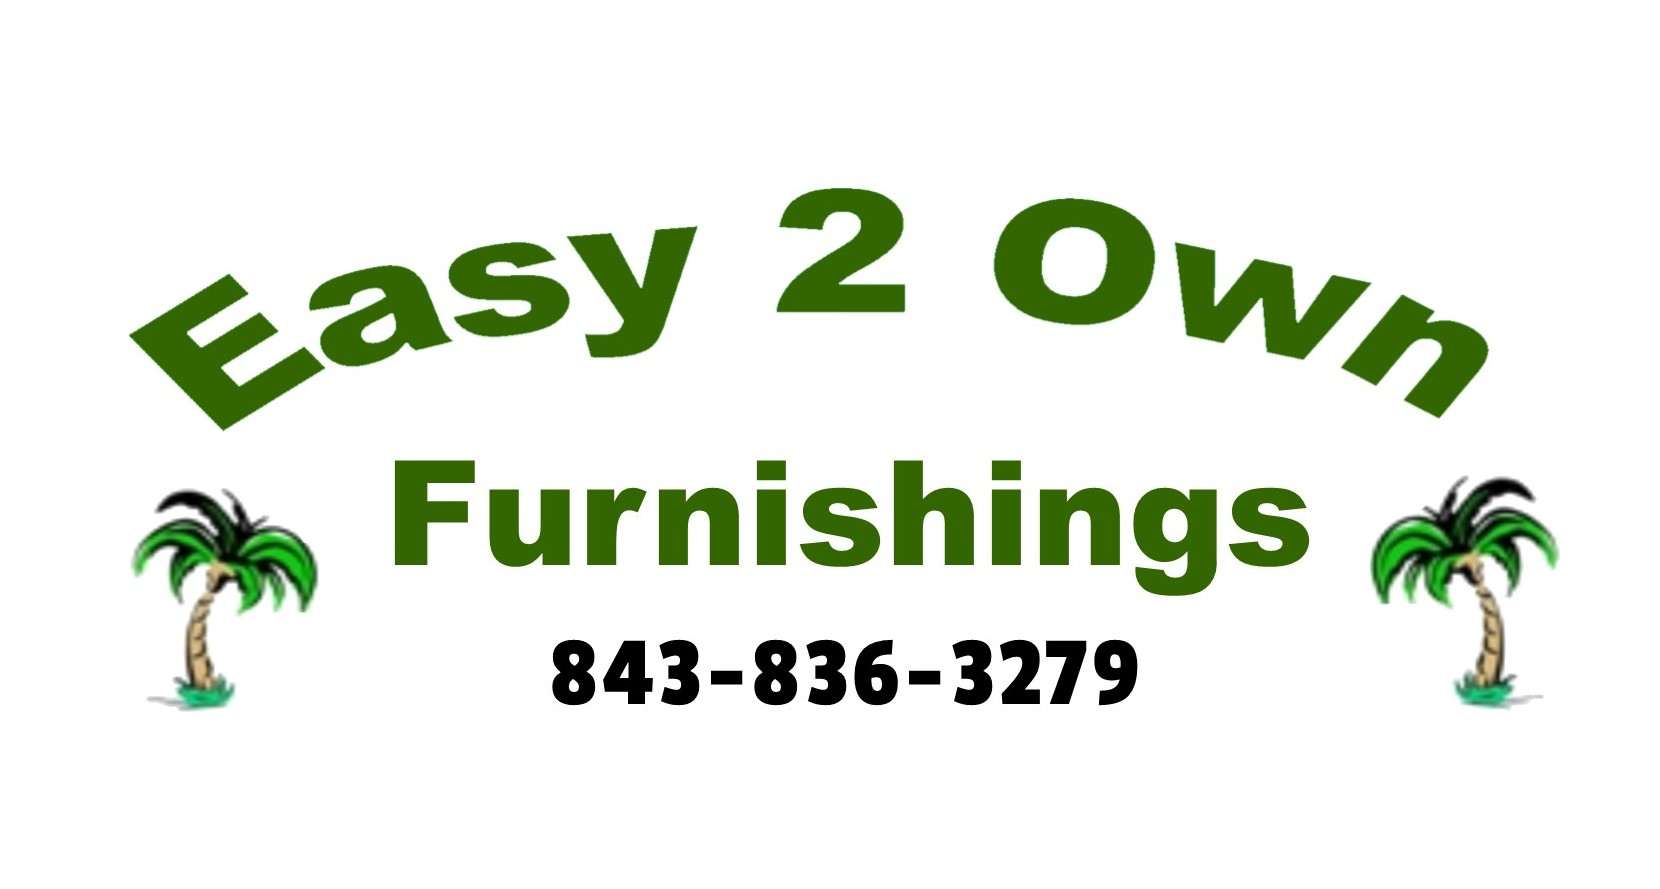 Easy 2 Own Furnishings Sticky Logo Retina